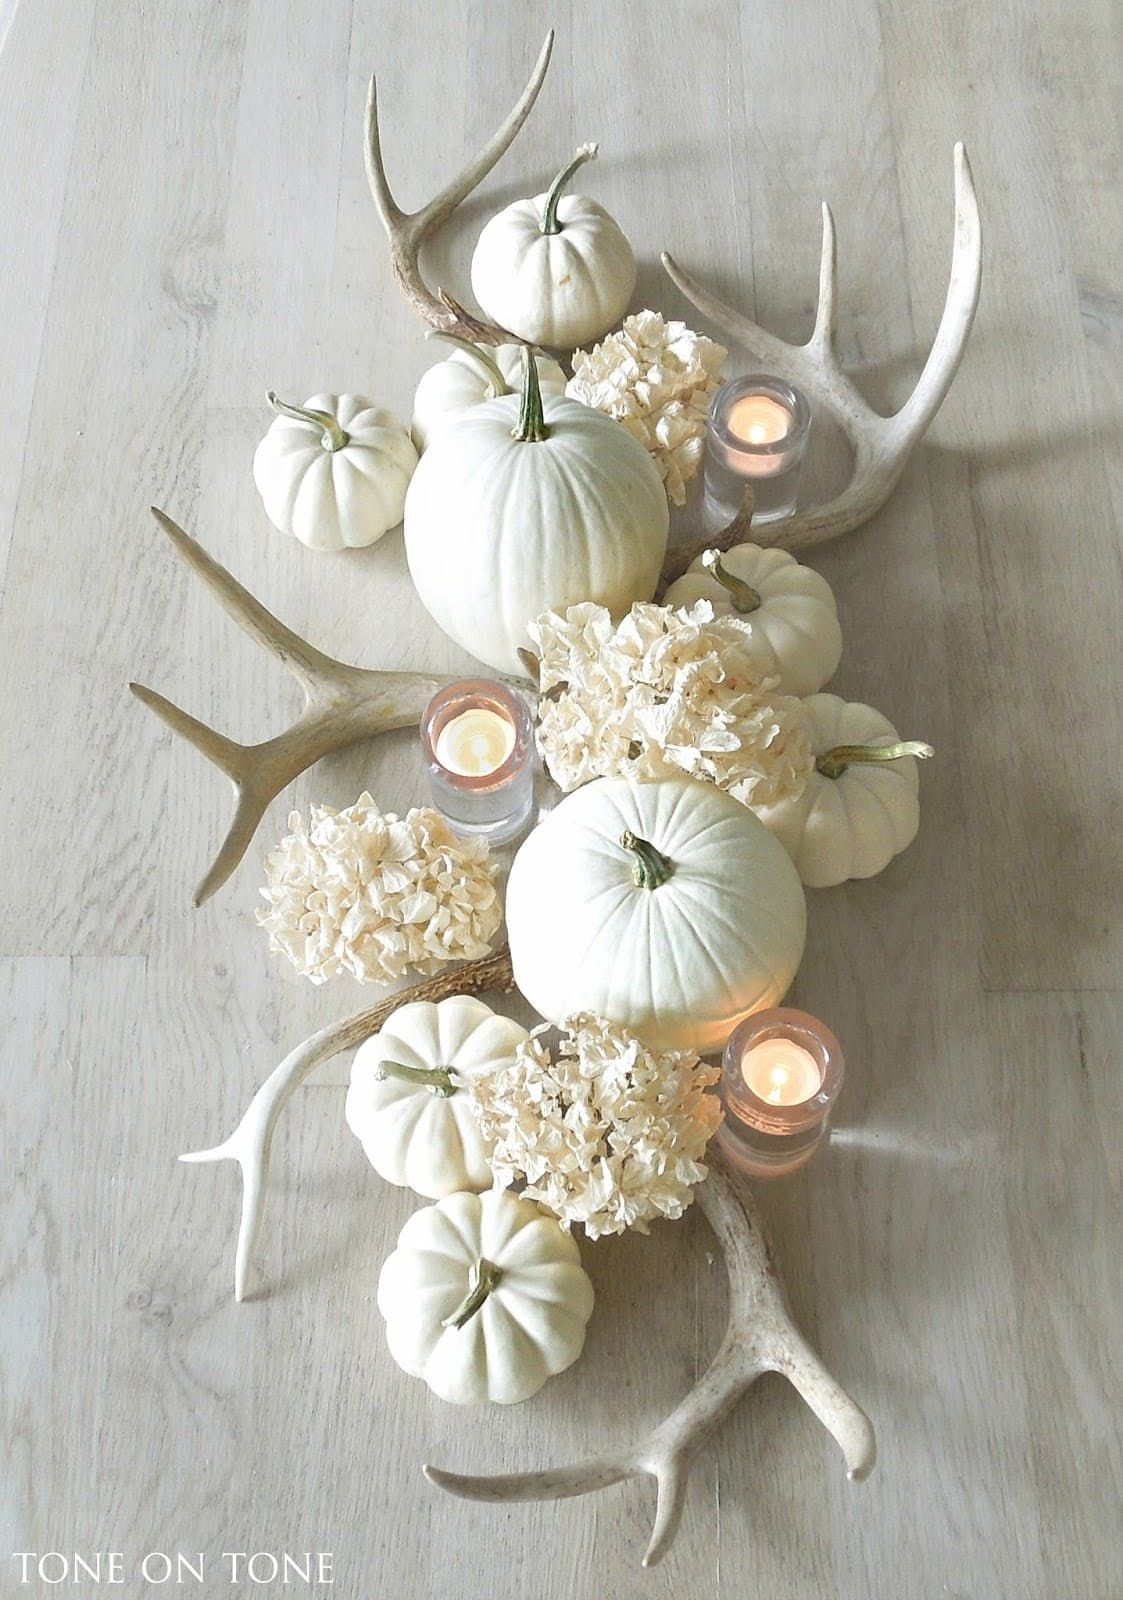 I Hate Halloween (But I Decorate Anyway): Ideas from a Reluctant Halloweener #thanksgivingdecor